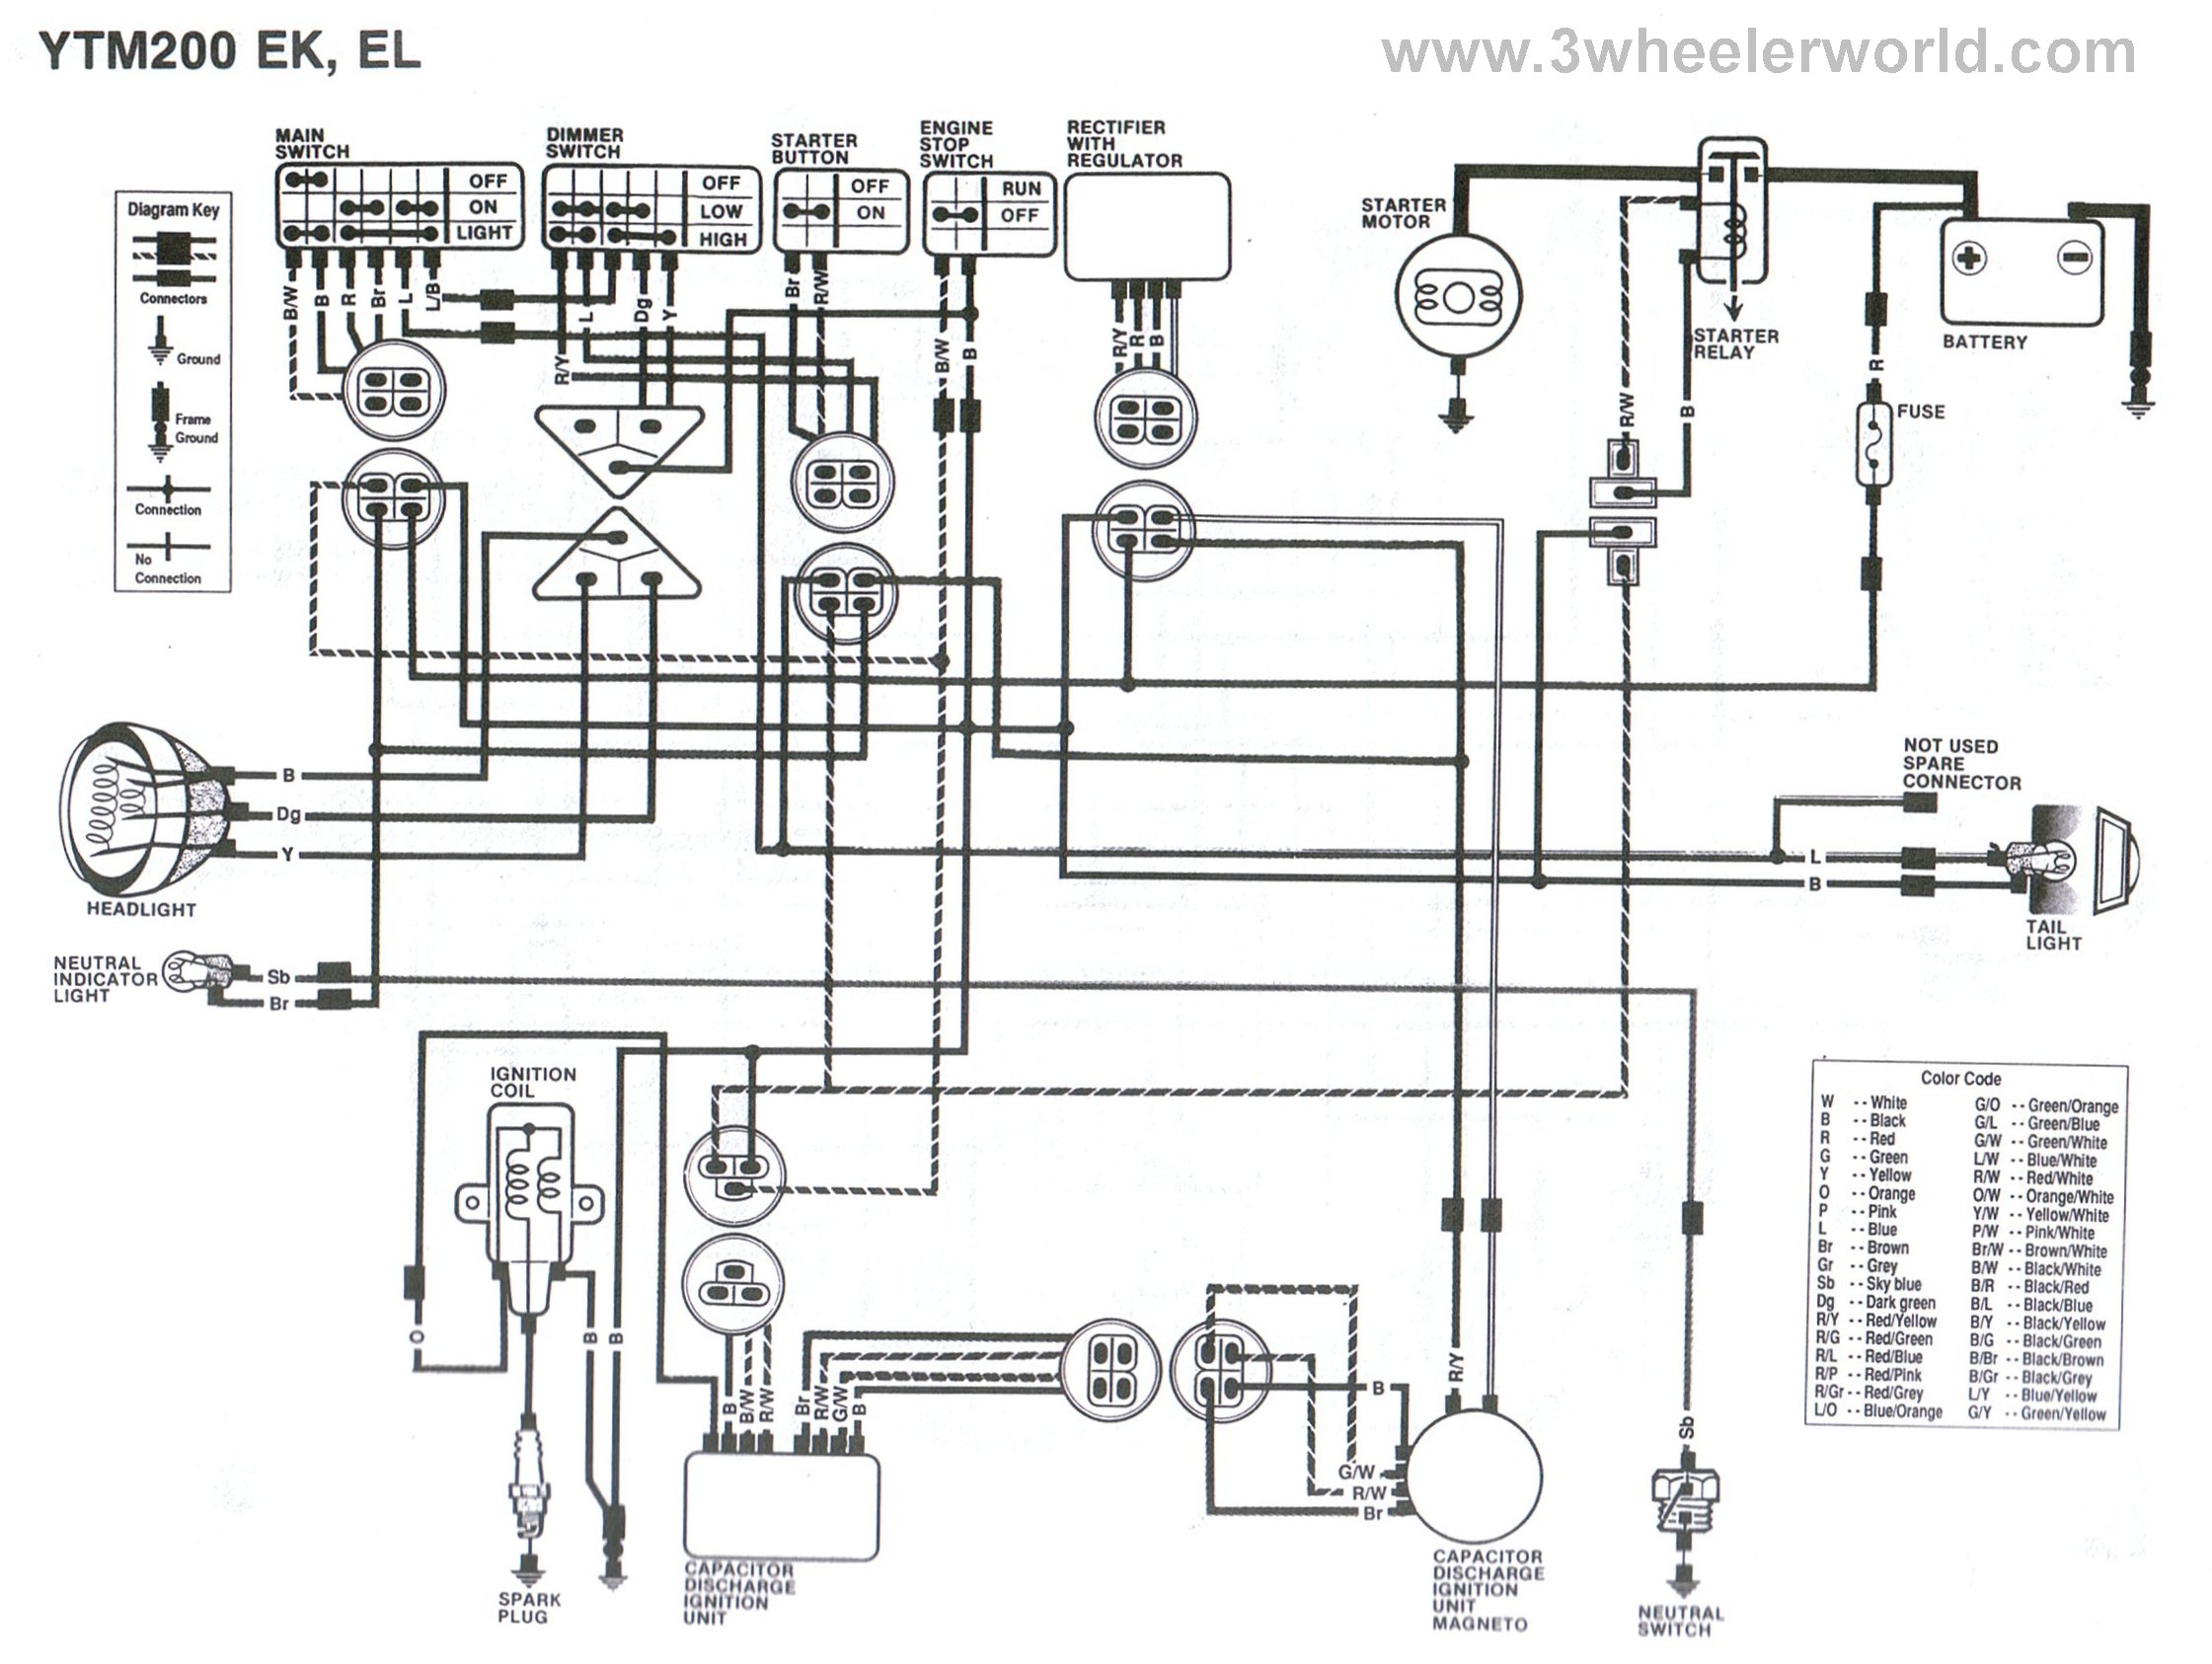 YTM200EKEL 3 wheeler world tech help yamaha wiring diagrams wiring diagram 1985 honda 250 fourtrax at bakdesigns.co